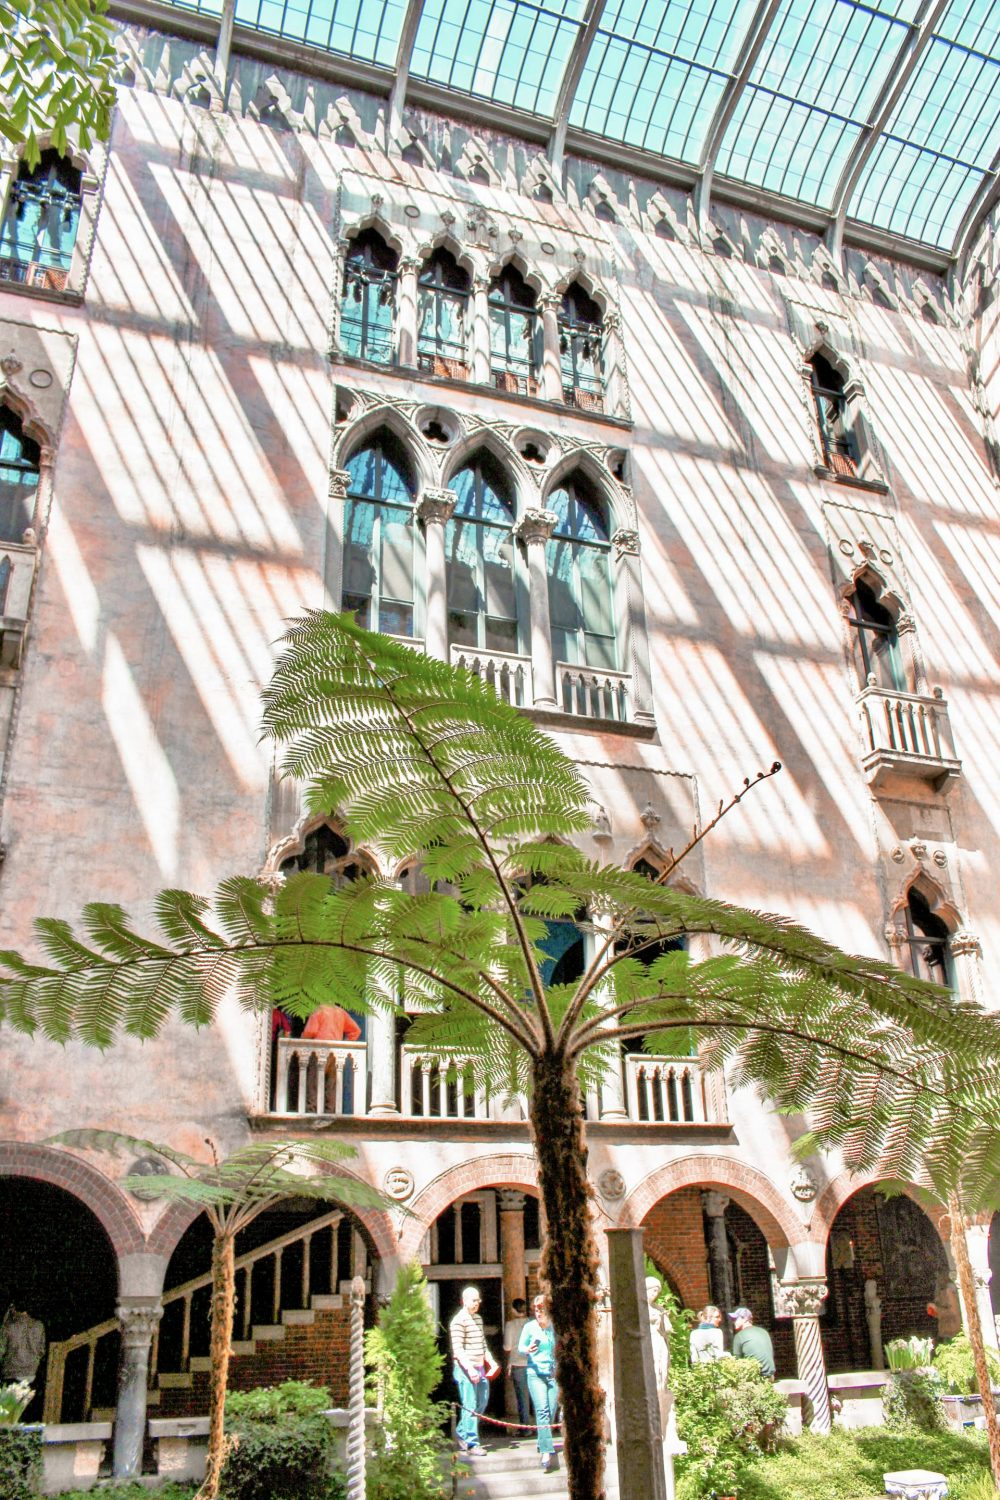 The palm courtyard is one of the main reasons why you should visit Isabella Gardner Museum. This place will take your breathe away with its eccentric art and its unique take on what a museum is.